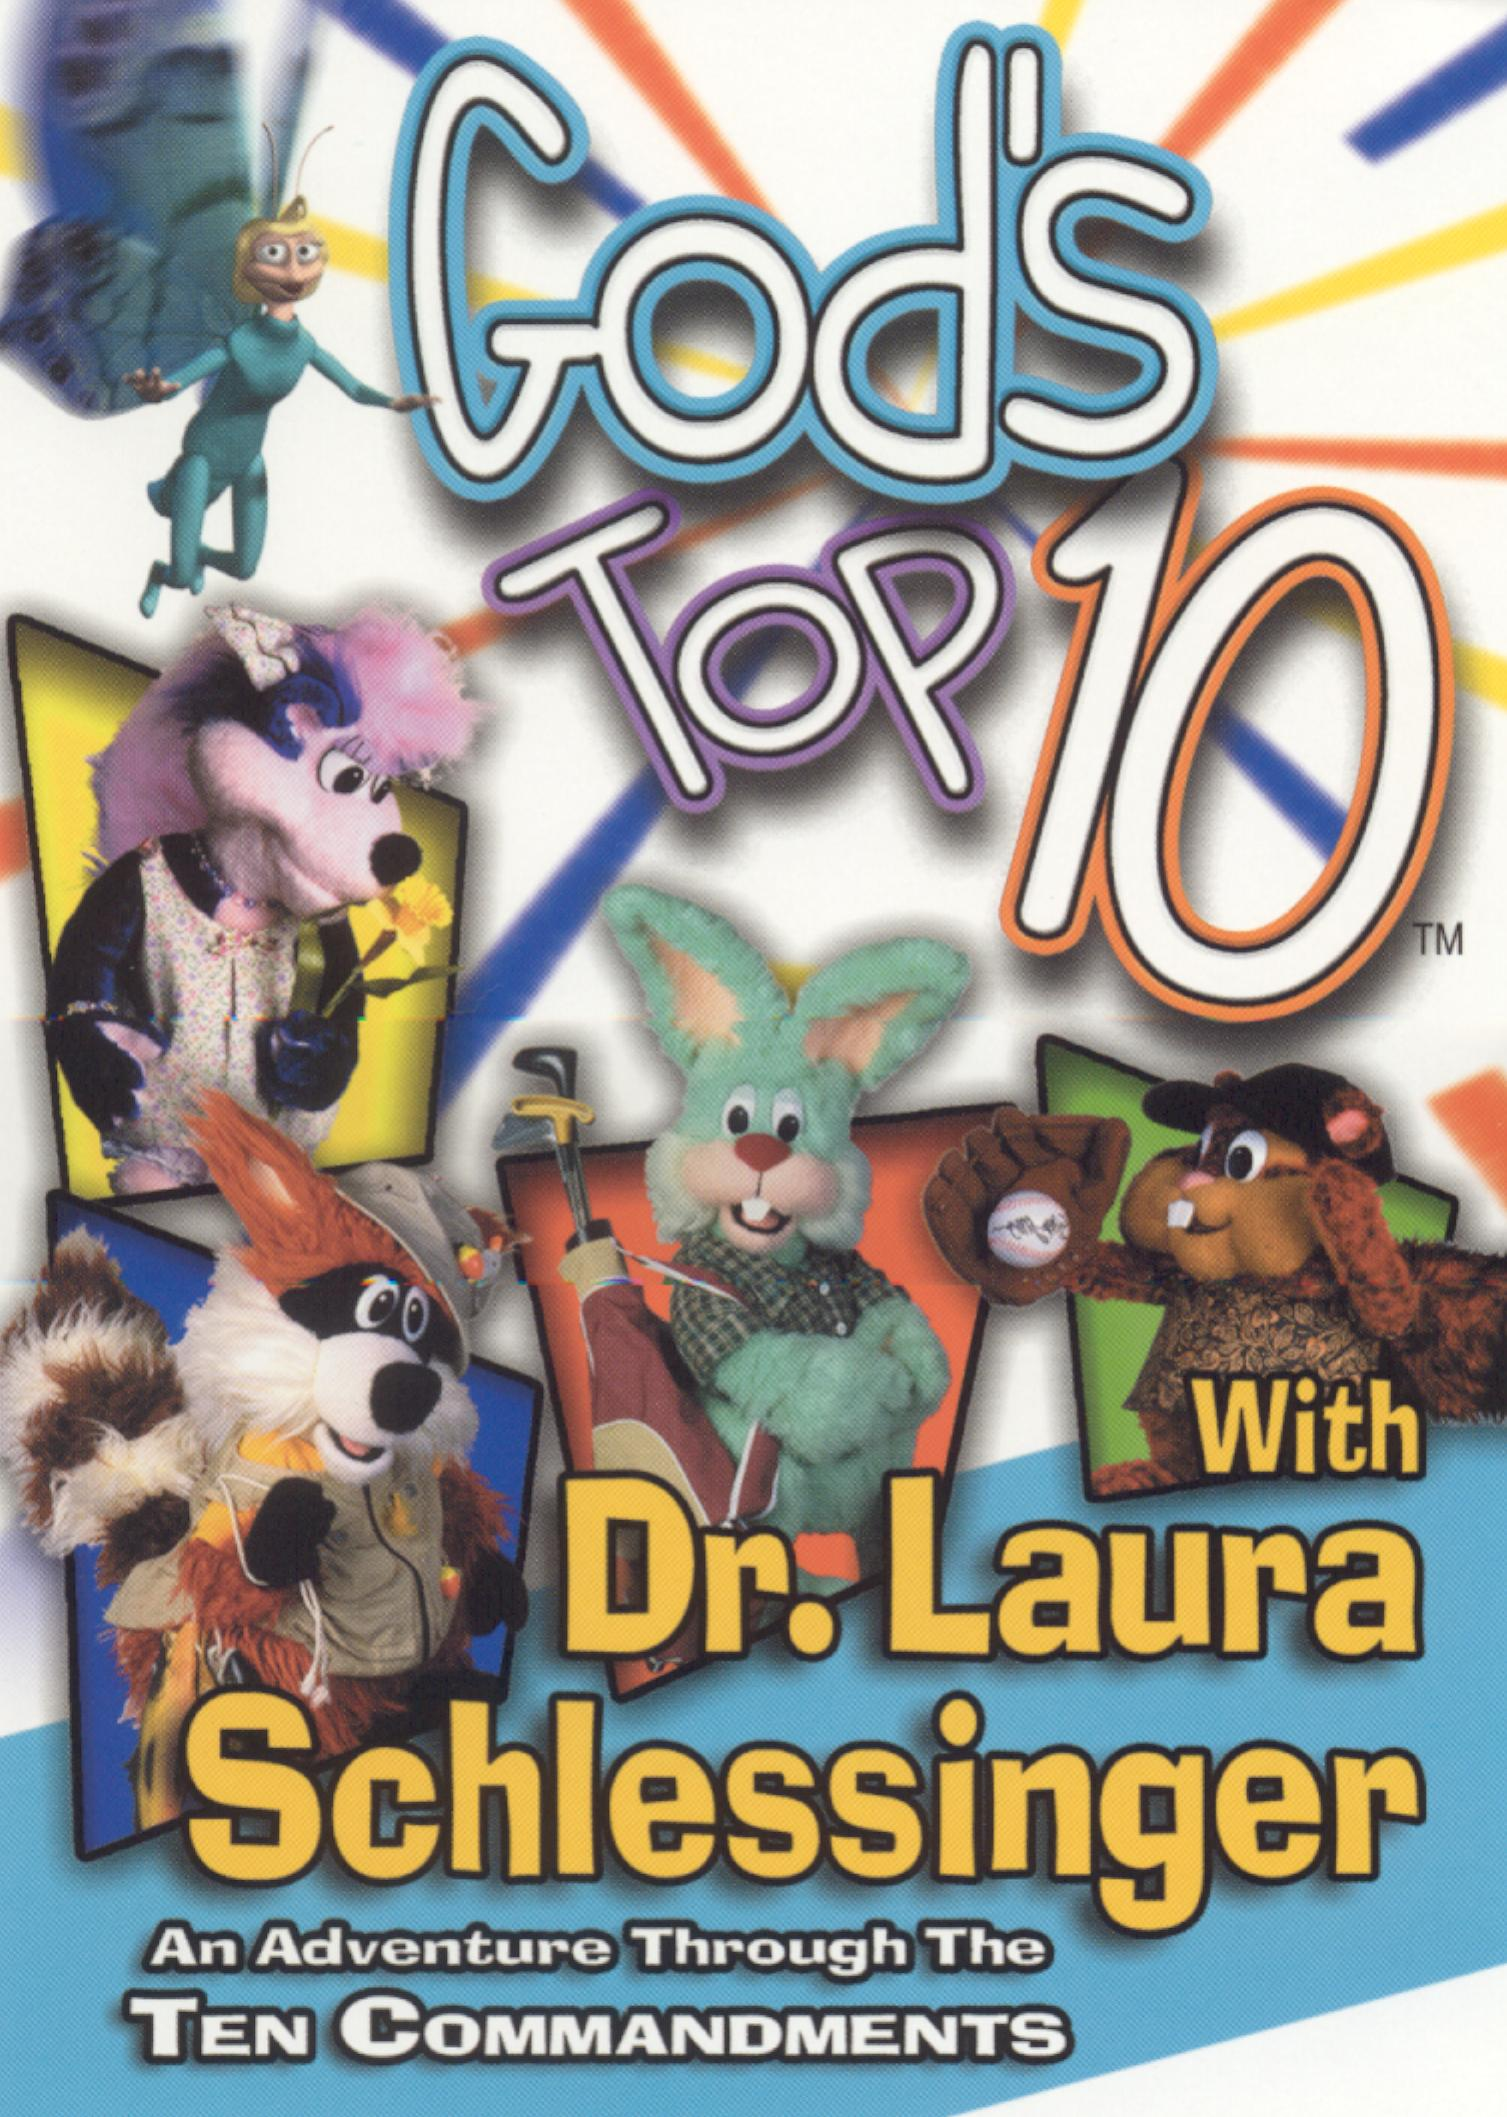 God's Top 10 with Dr. Laura Schlessinger: An Adventure through the Ten Commandments